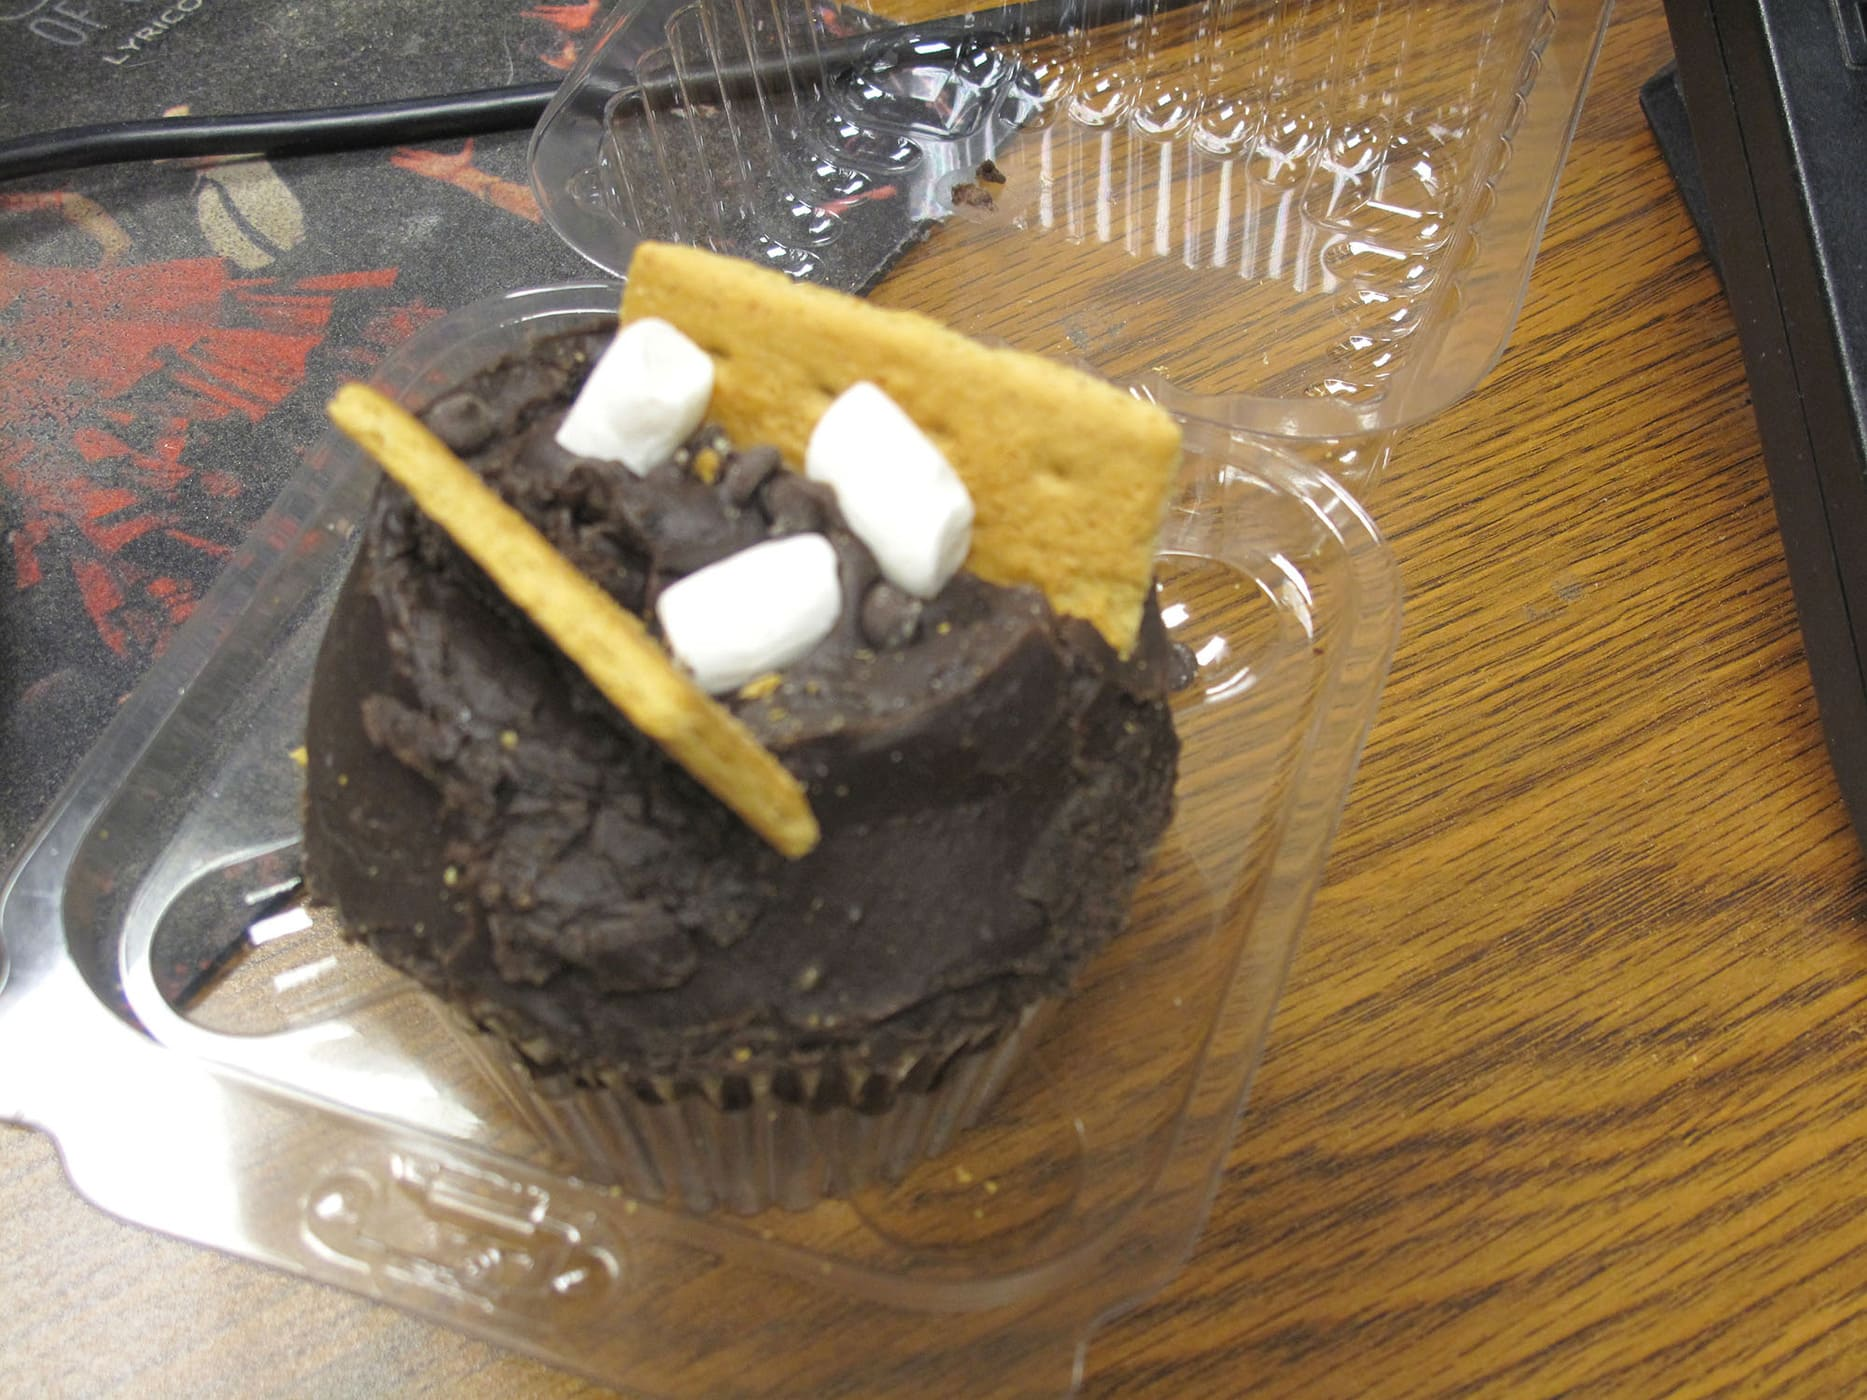 S'mores cupcake from Crumbs Bake Shop